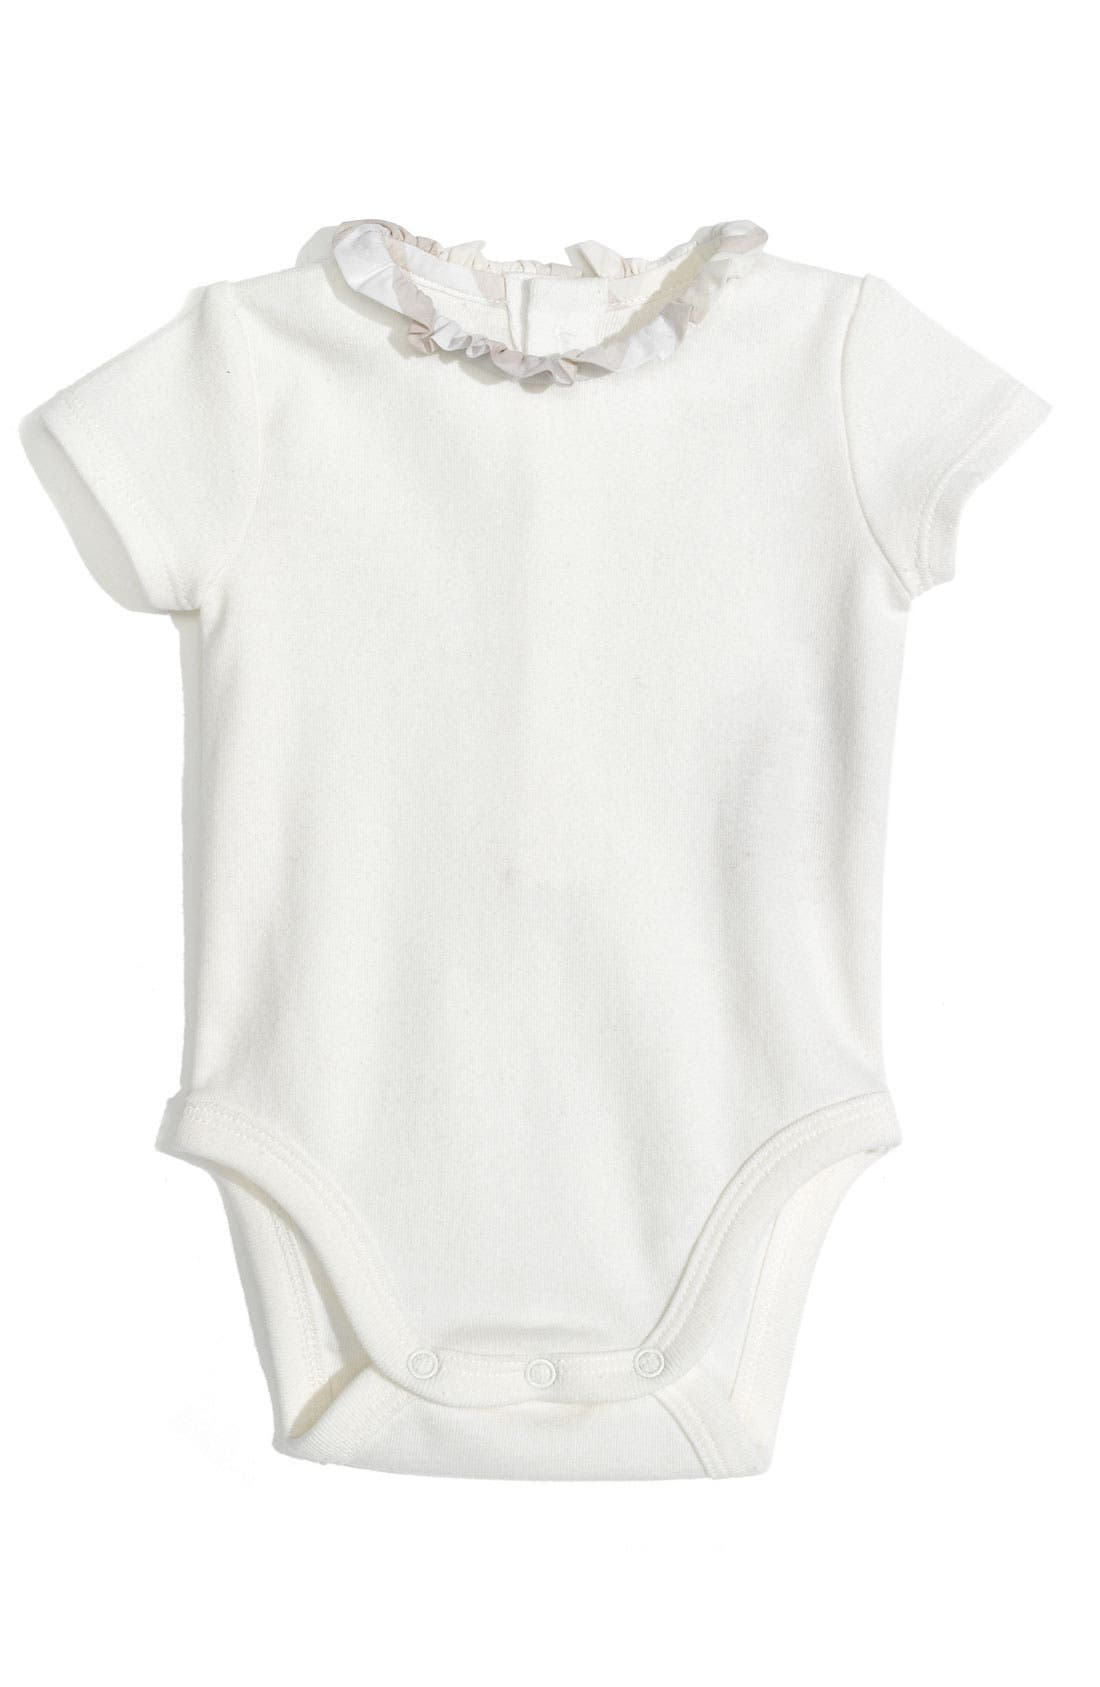 Main Image - Burberry 'Audrey' Ruffle Collar Bodysuit (Infant)